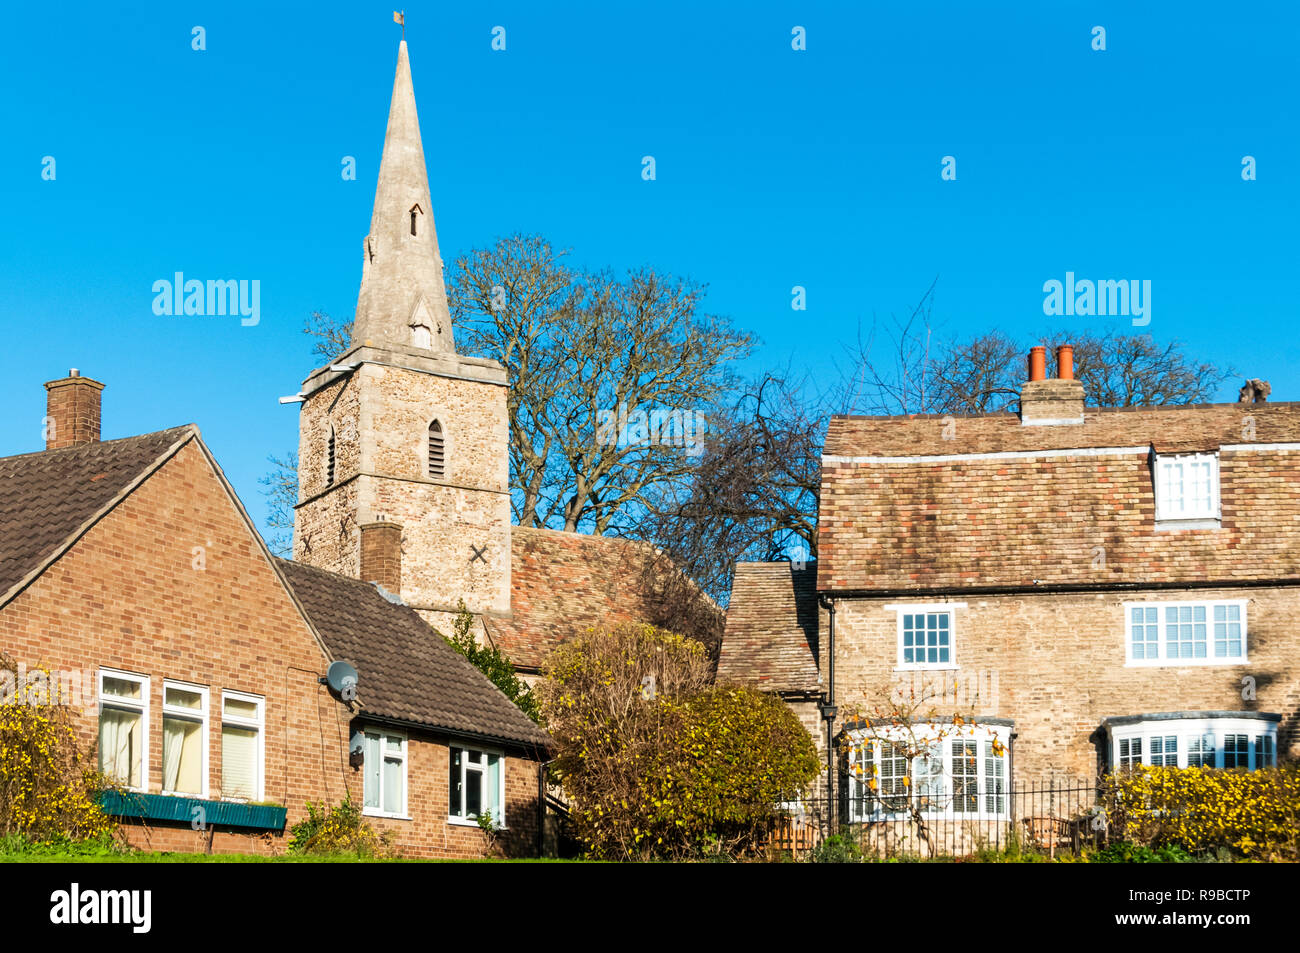 The redundant St Peter's church, Cambridge behind the buildings of Kettle's Yard. - Stock Image